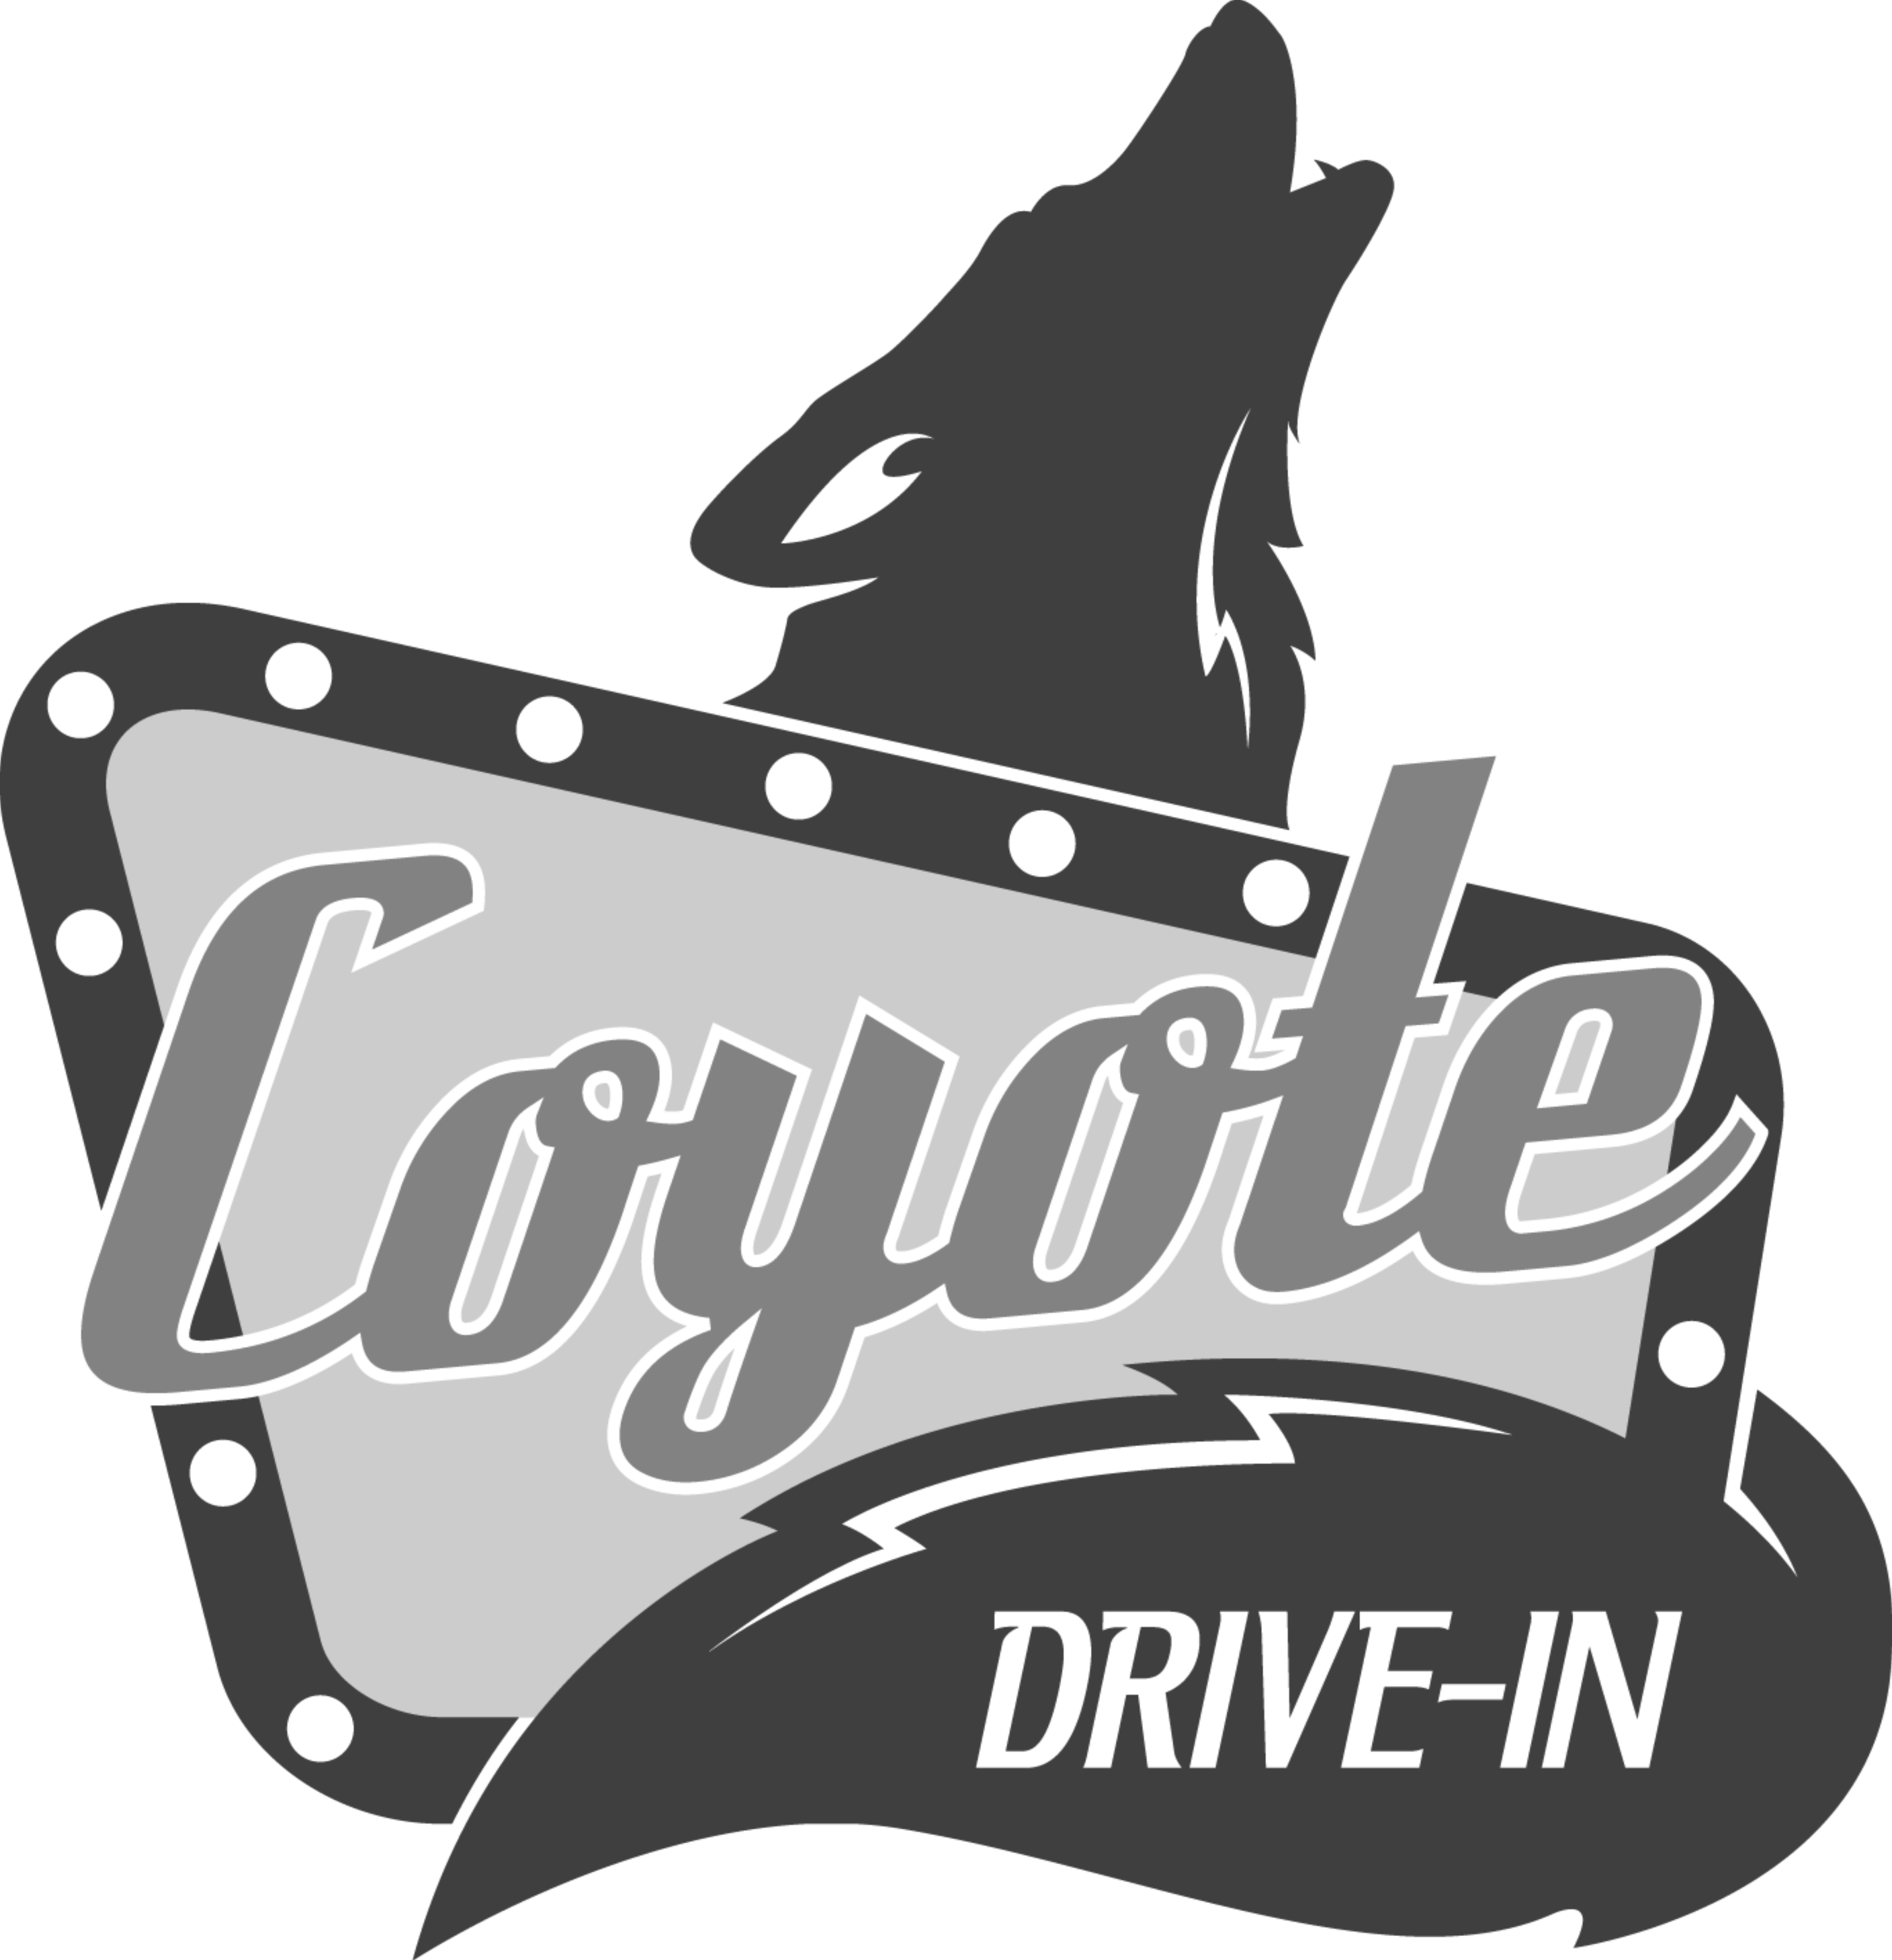 Coyote Drive In logo